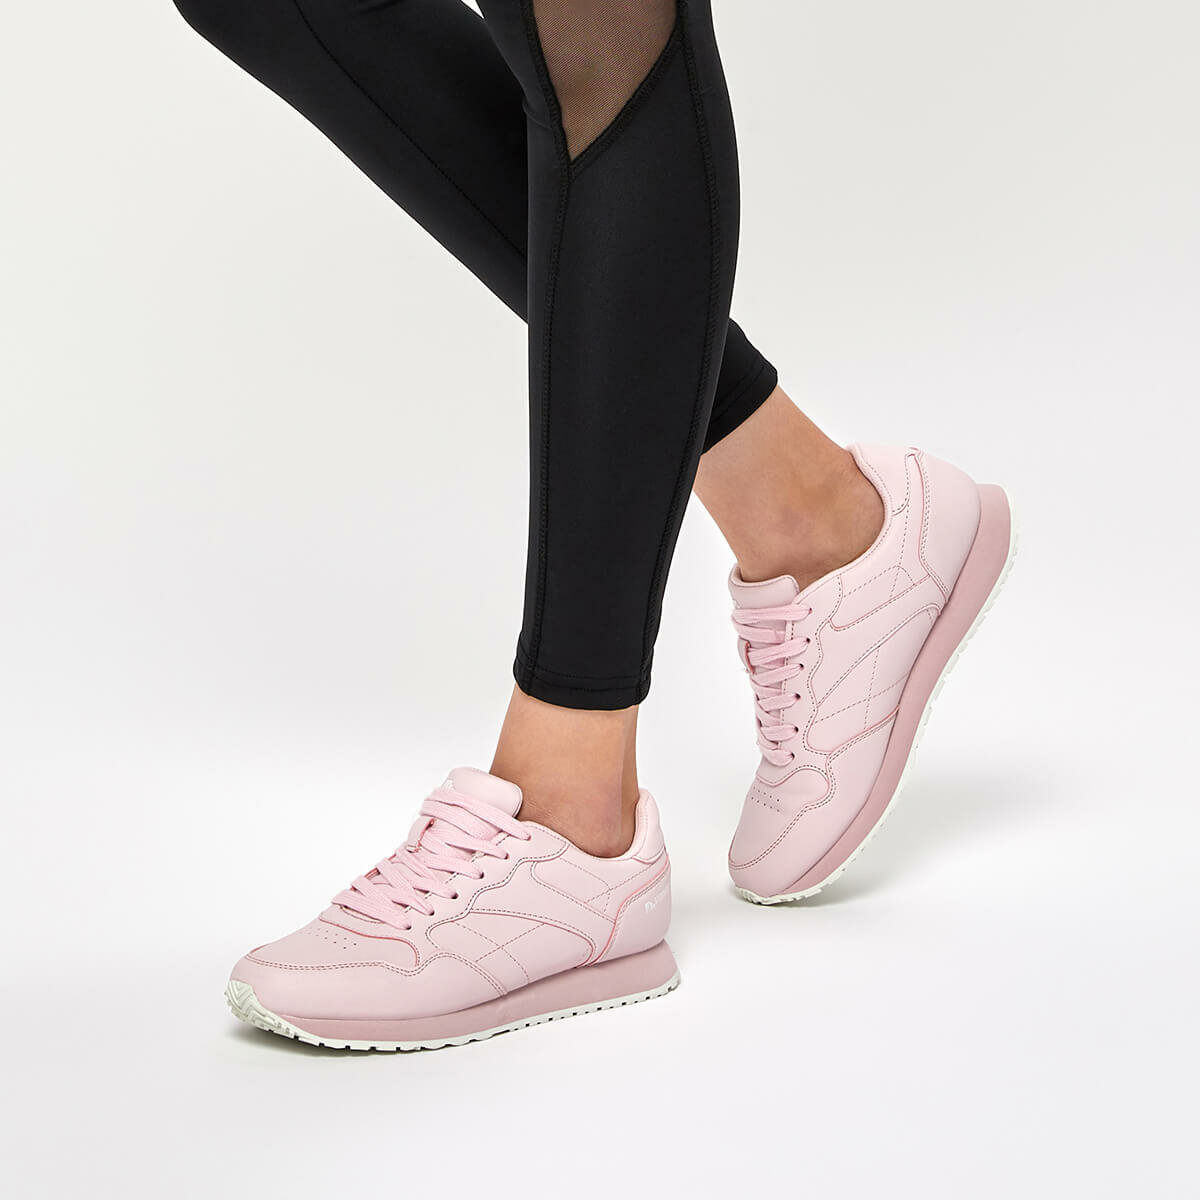 FLO HELLO WMN Light Pink Women 'S Sneaker Shoes LUMBERJACK